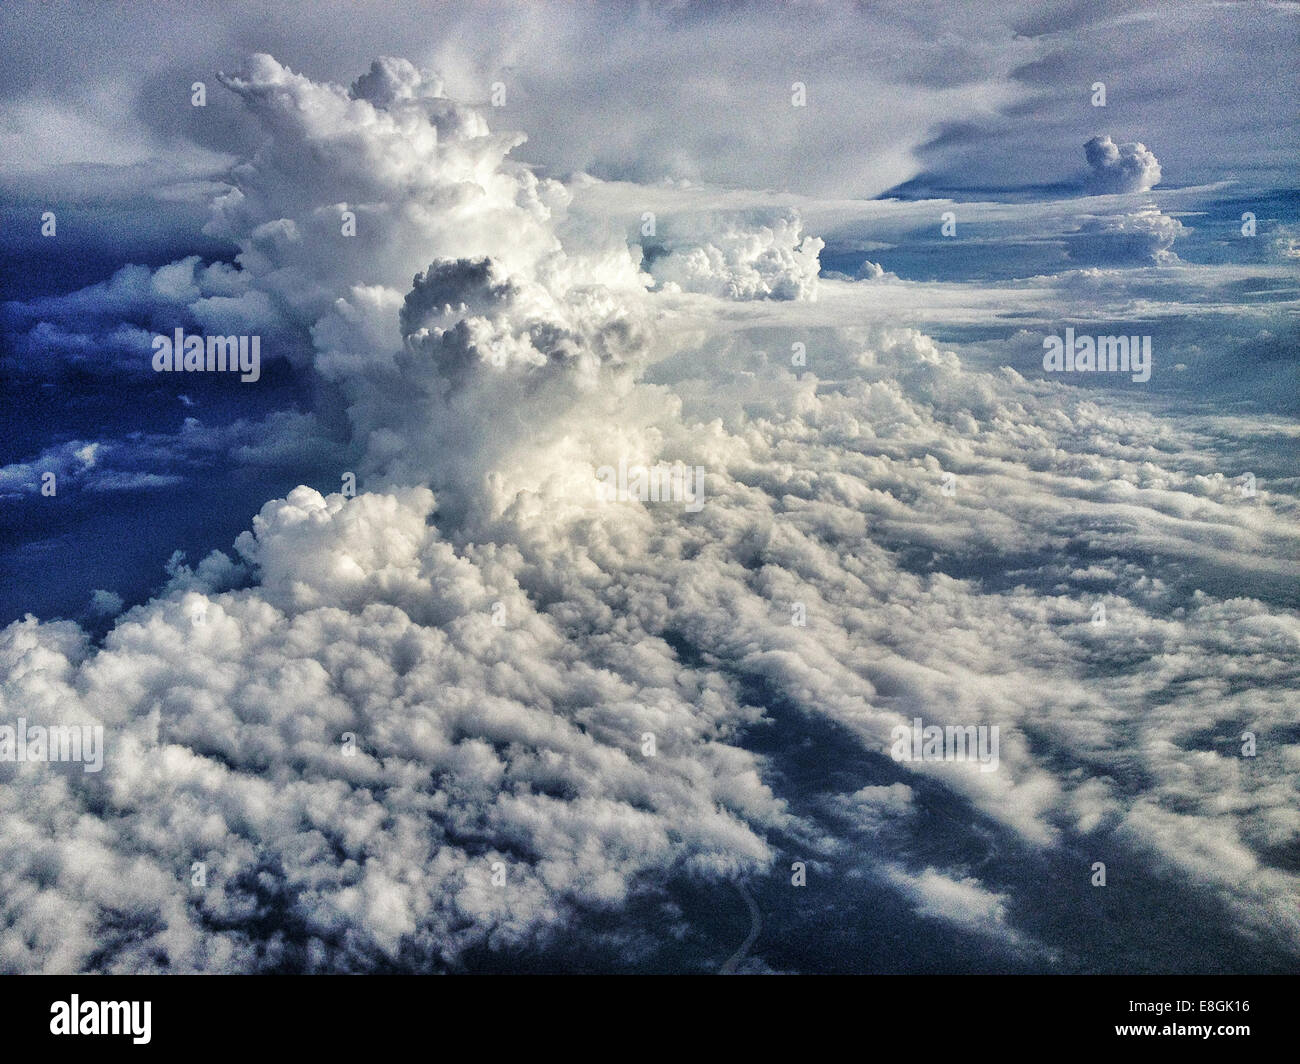 L'INDONÉSIE, Bali, Cloudscape Photo Stock